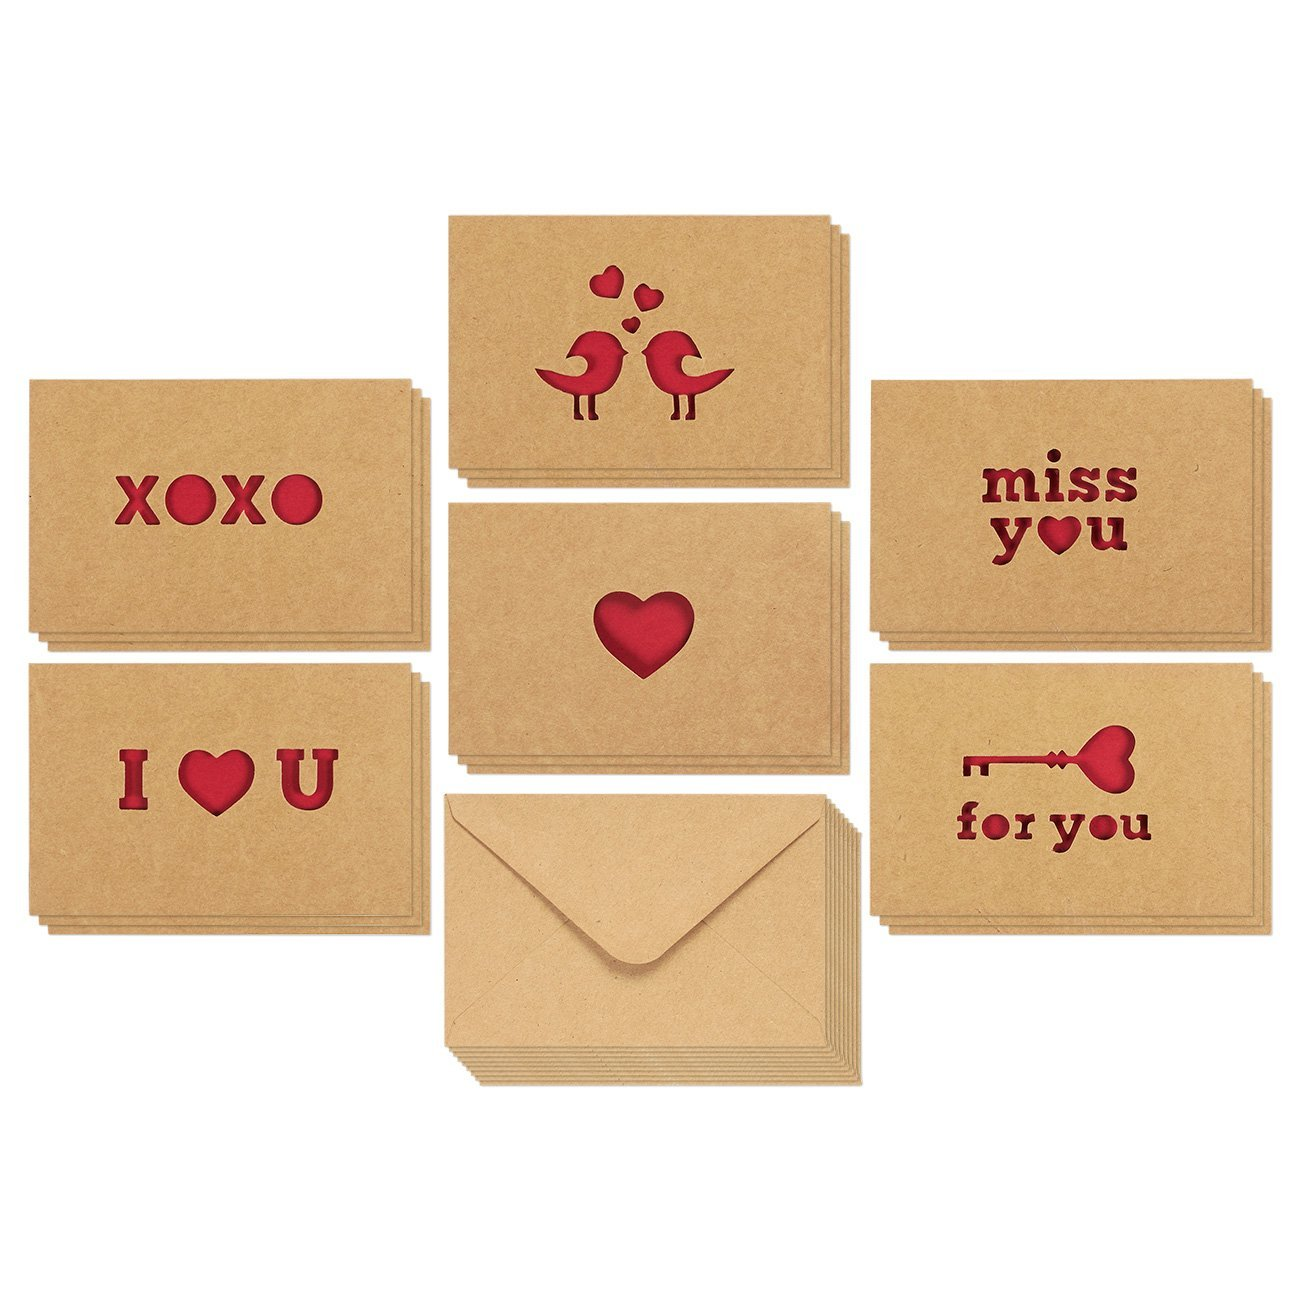 Love Cards - Romantic Greeting Cards for Valentine's Day, Anniversaries, 6 Assorted Kraft Card Designs with Miss You, I Love You